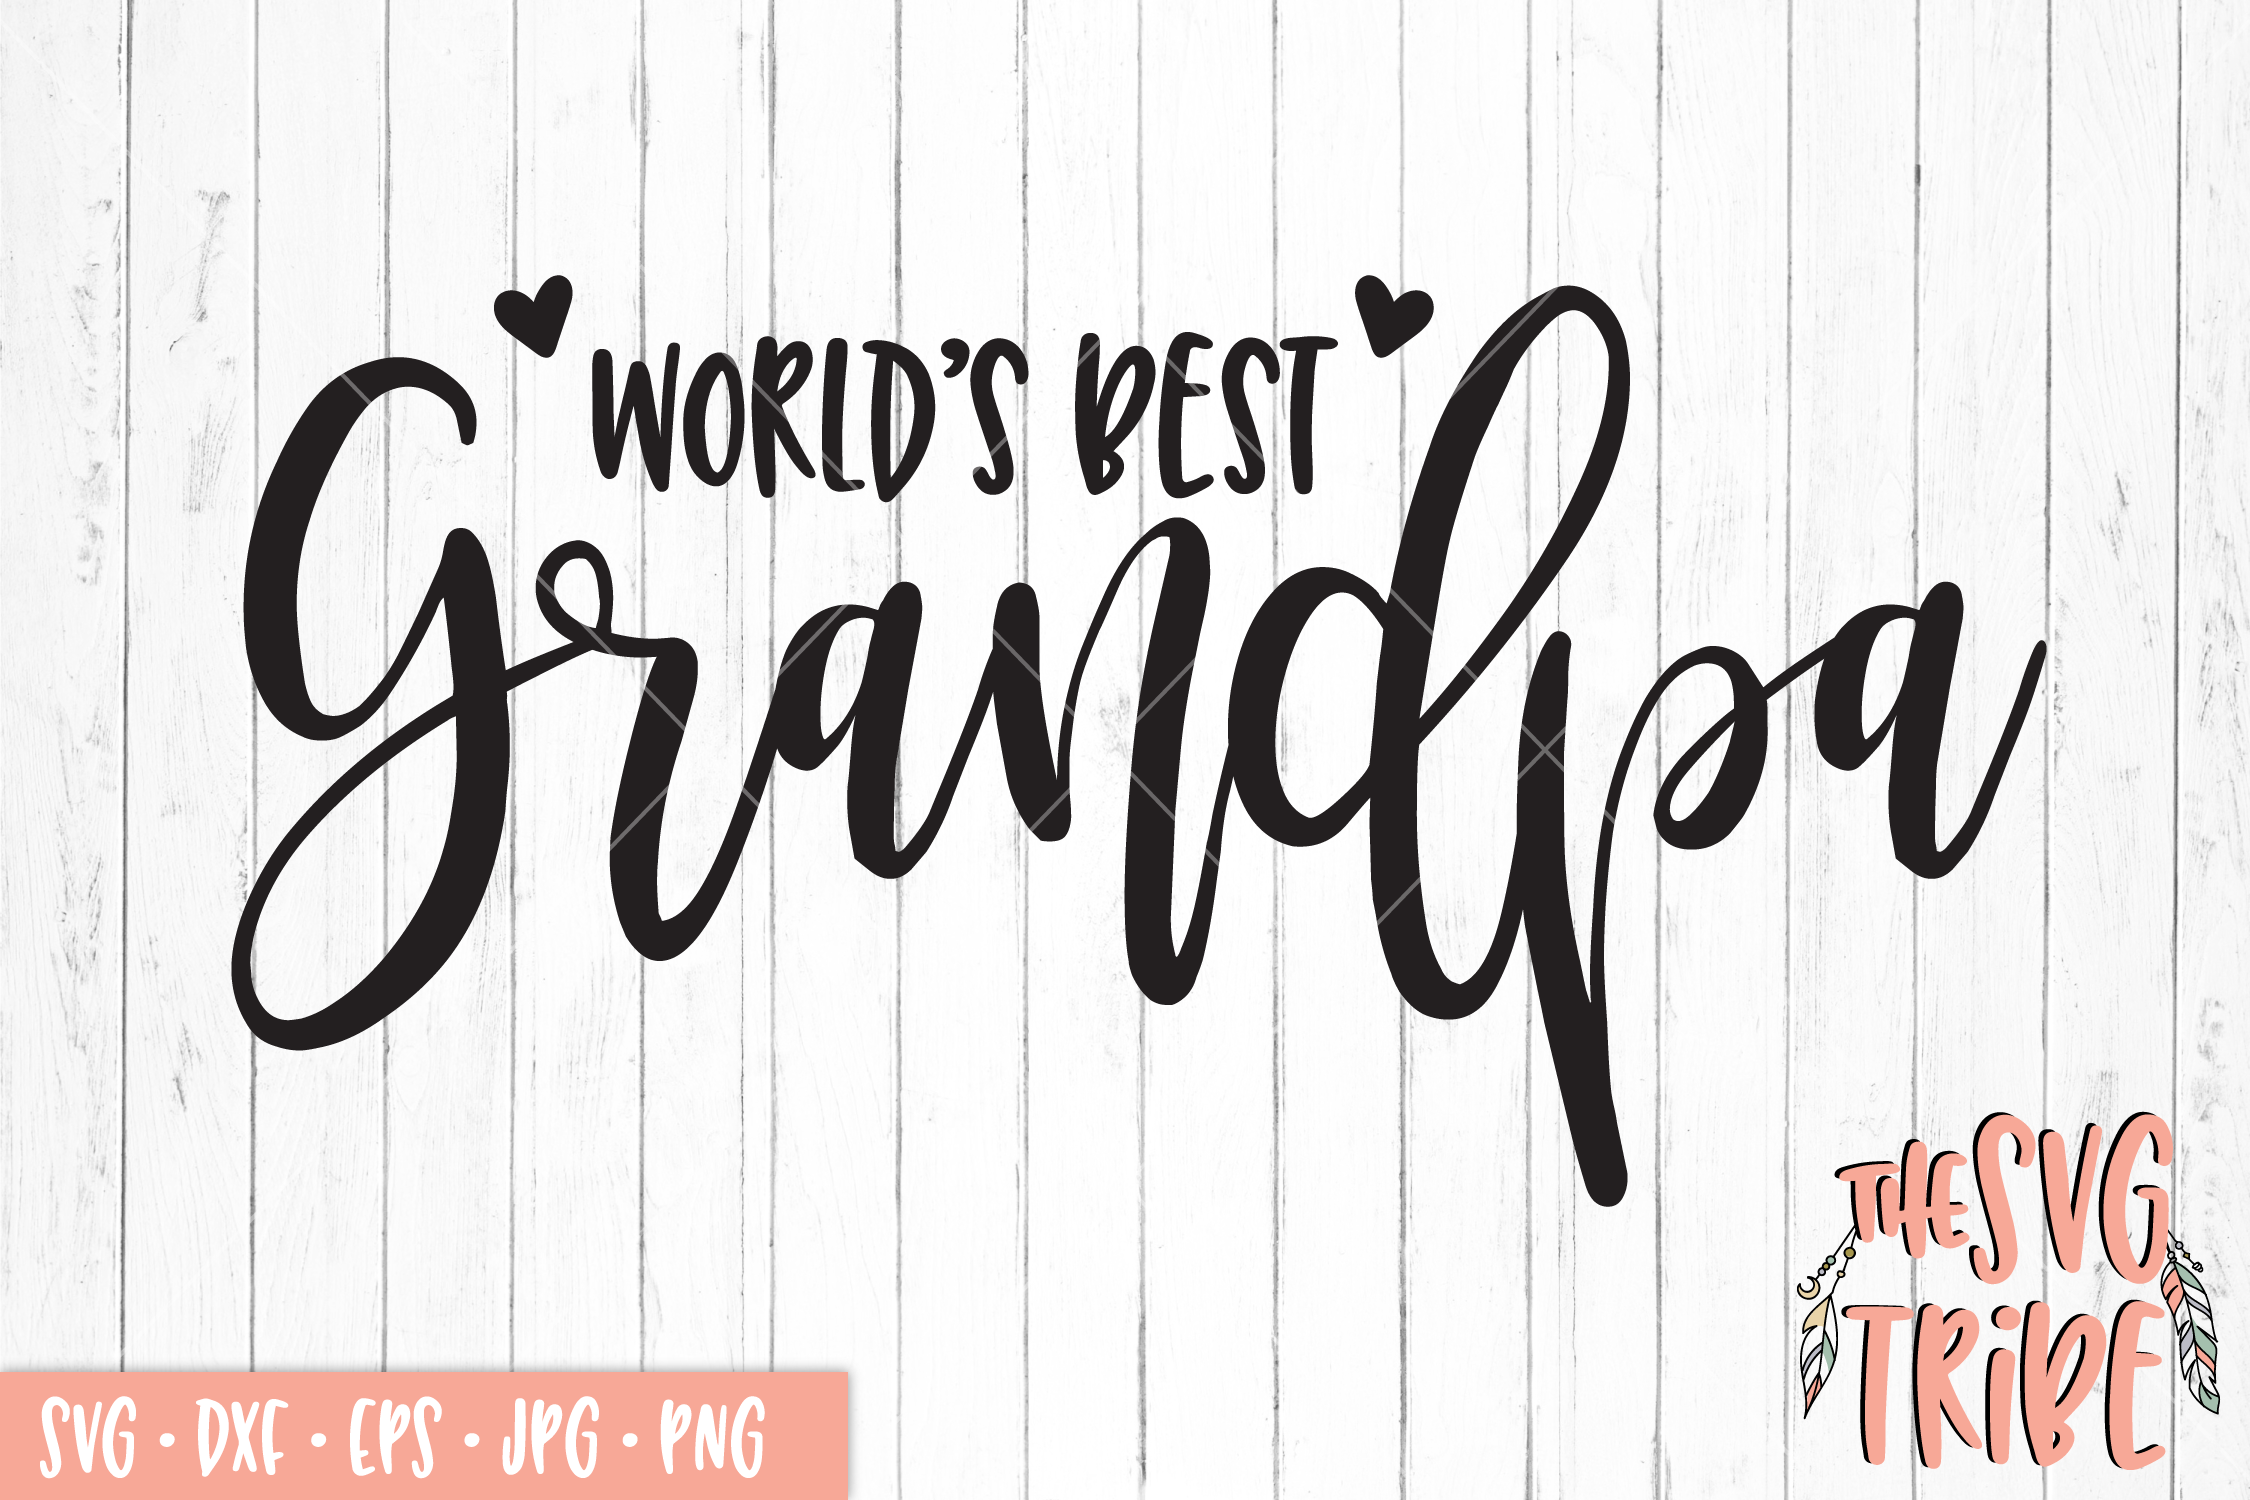 World's Best Grandpa, SVG DXF PNG EPS JPG Cutting Files example image 1